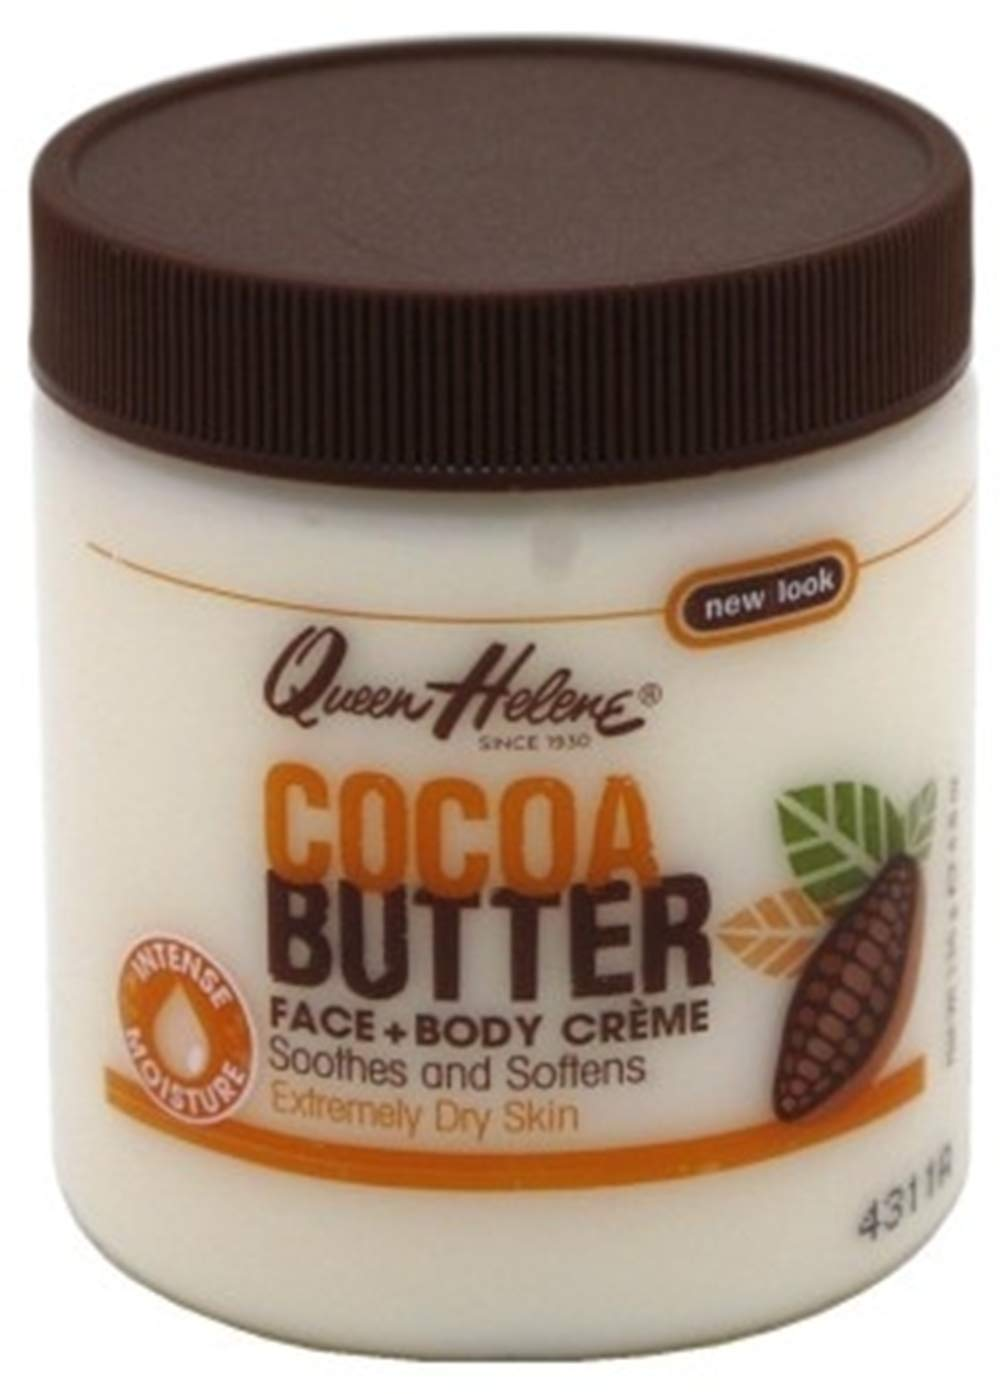 QUEEN HELENE Cocoa Butter Creme 4.8 oz (Pack of 2) by Queen Helene